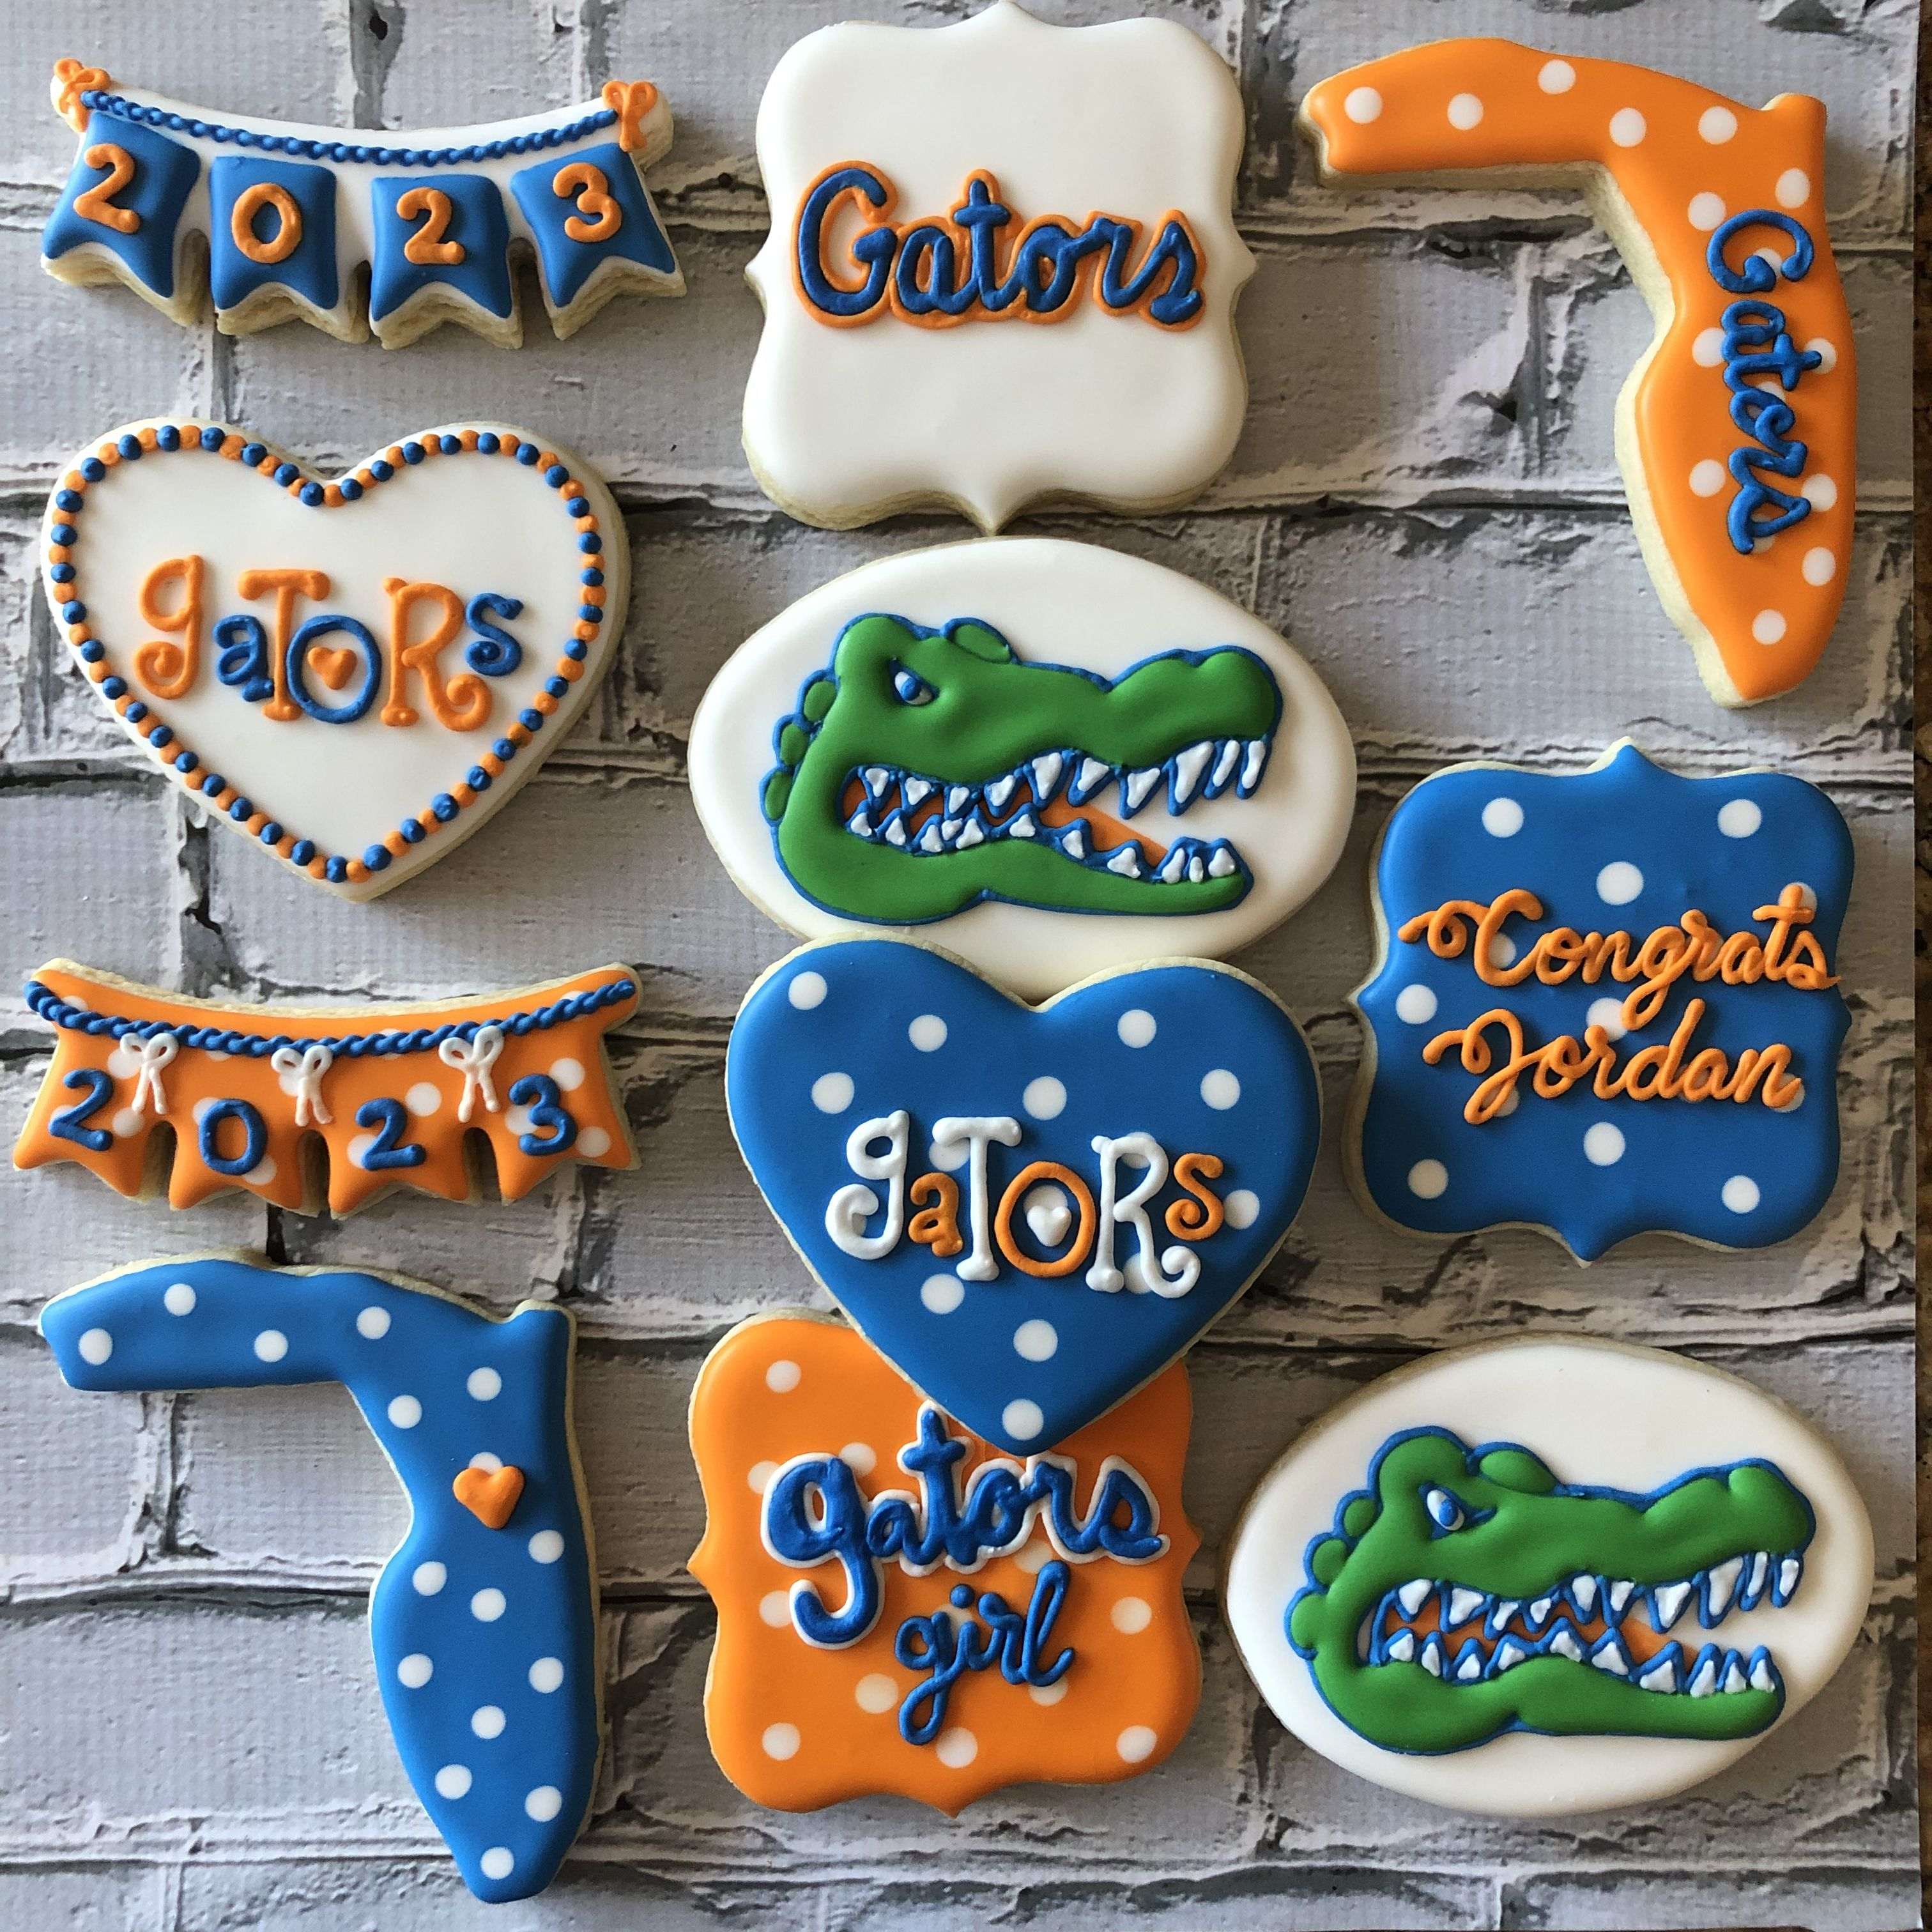 Custom UF Florida Gators Cookies To see my other work or for